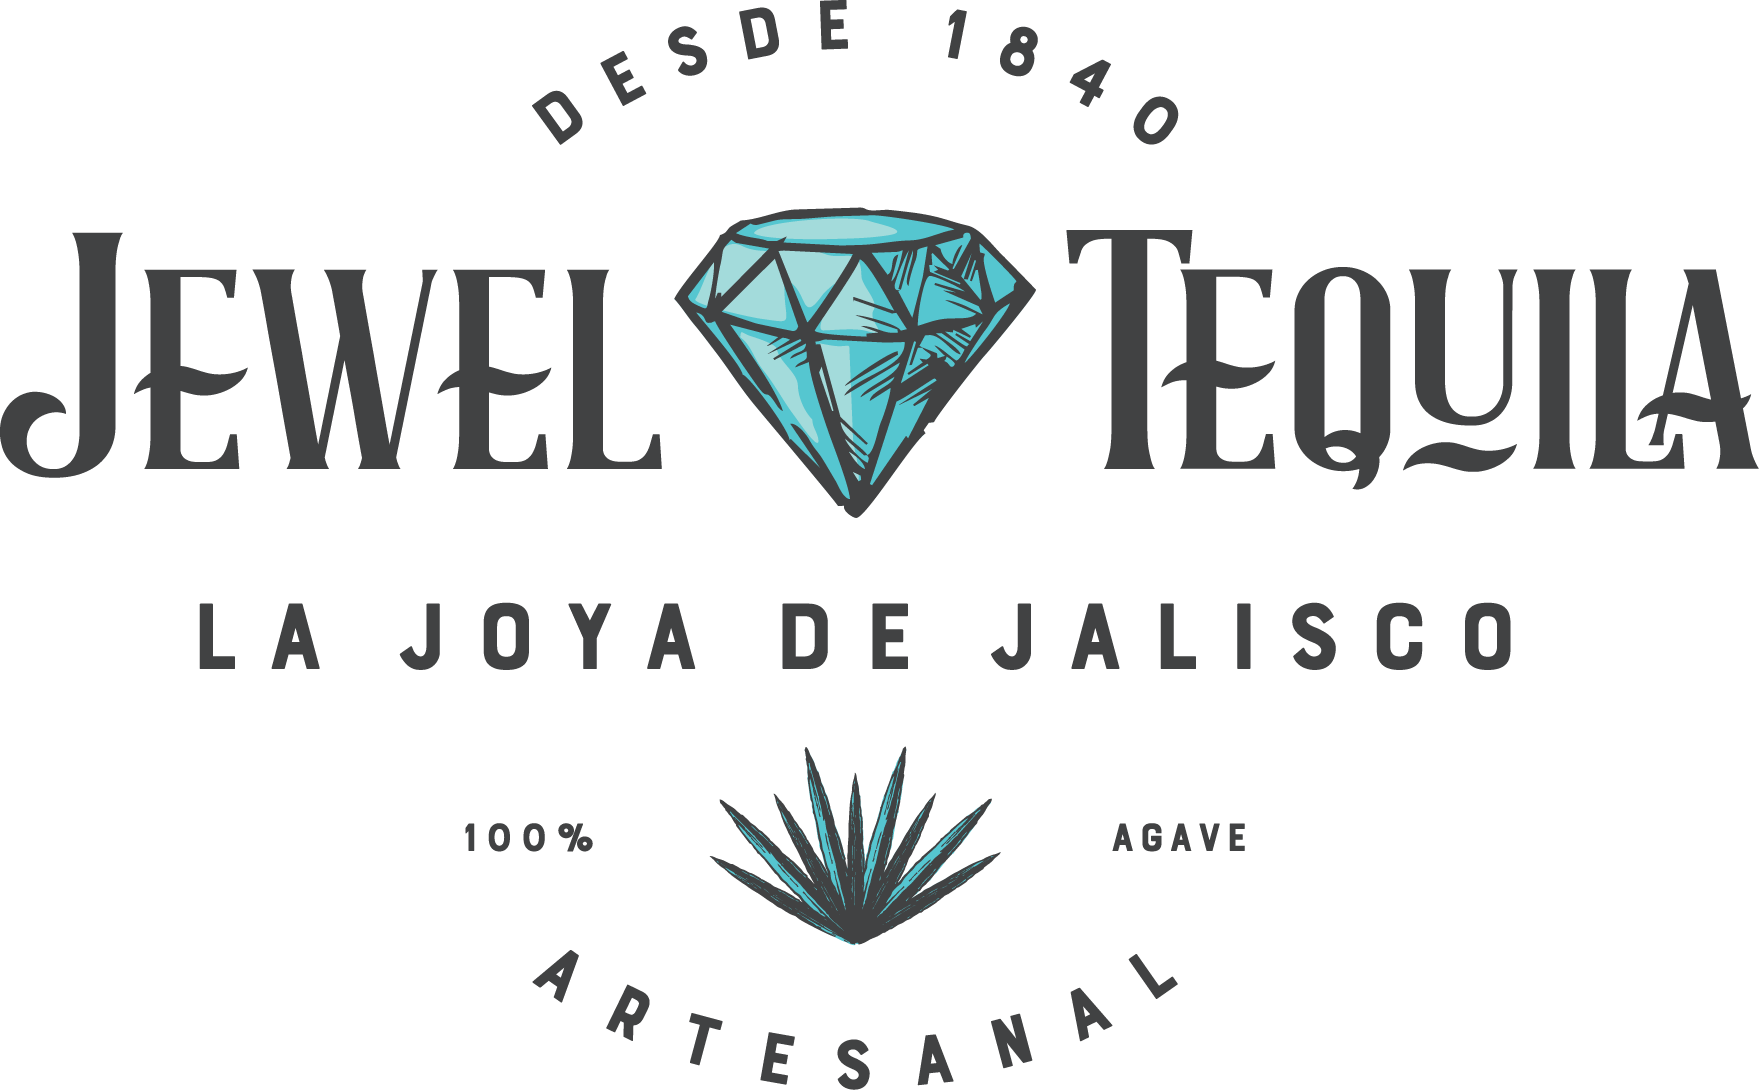 Cool, Modern, Hip Yet Traditional Logo For Tequila Brand